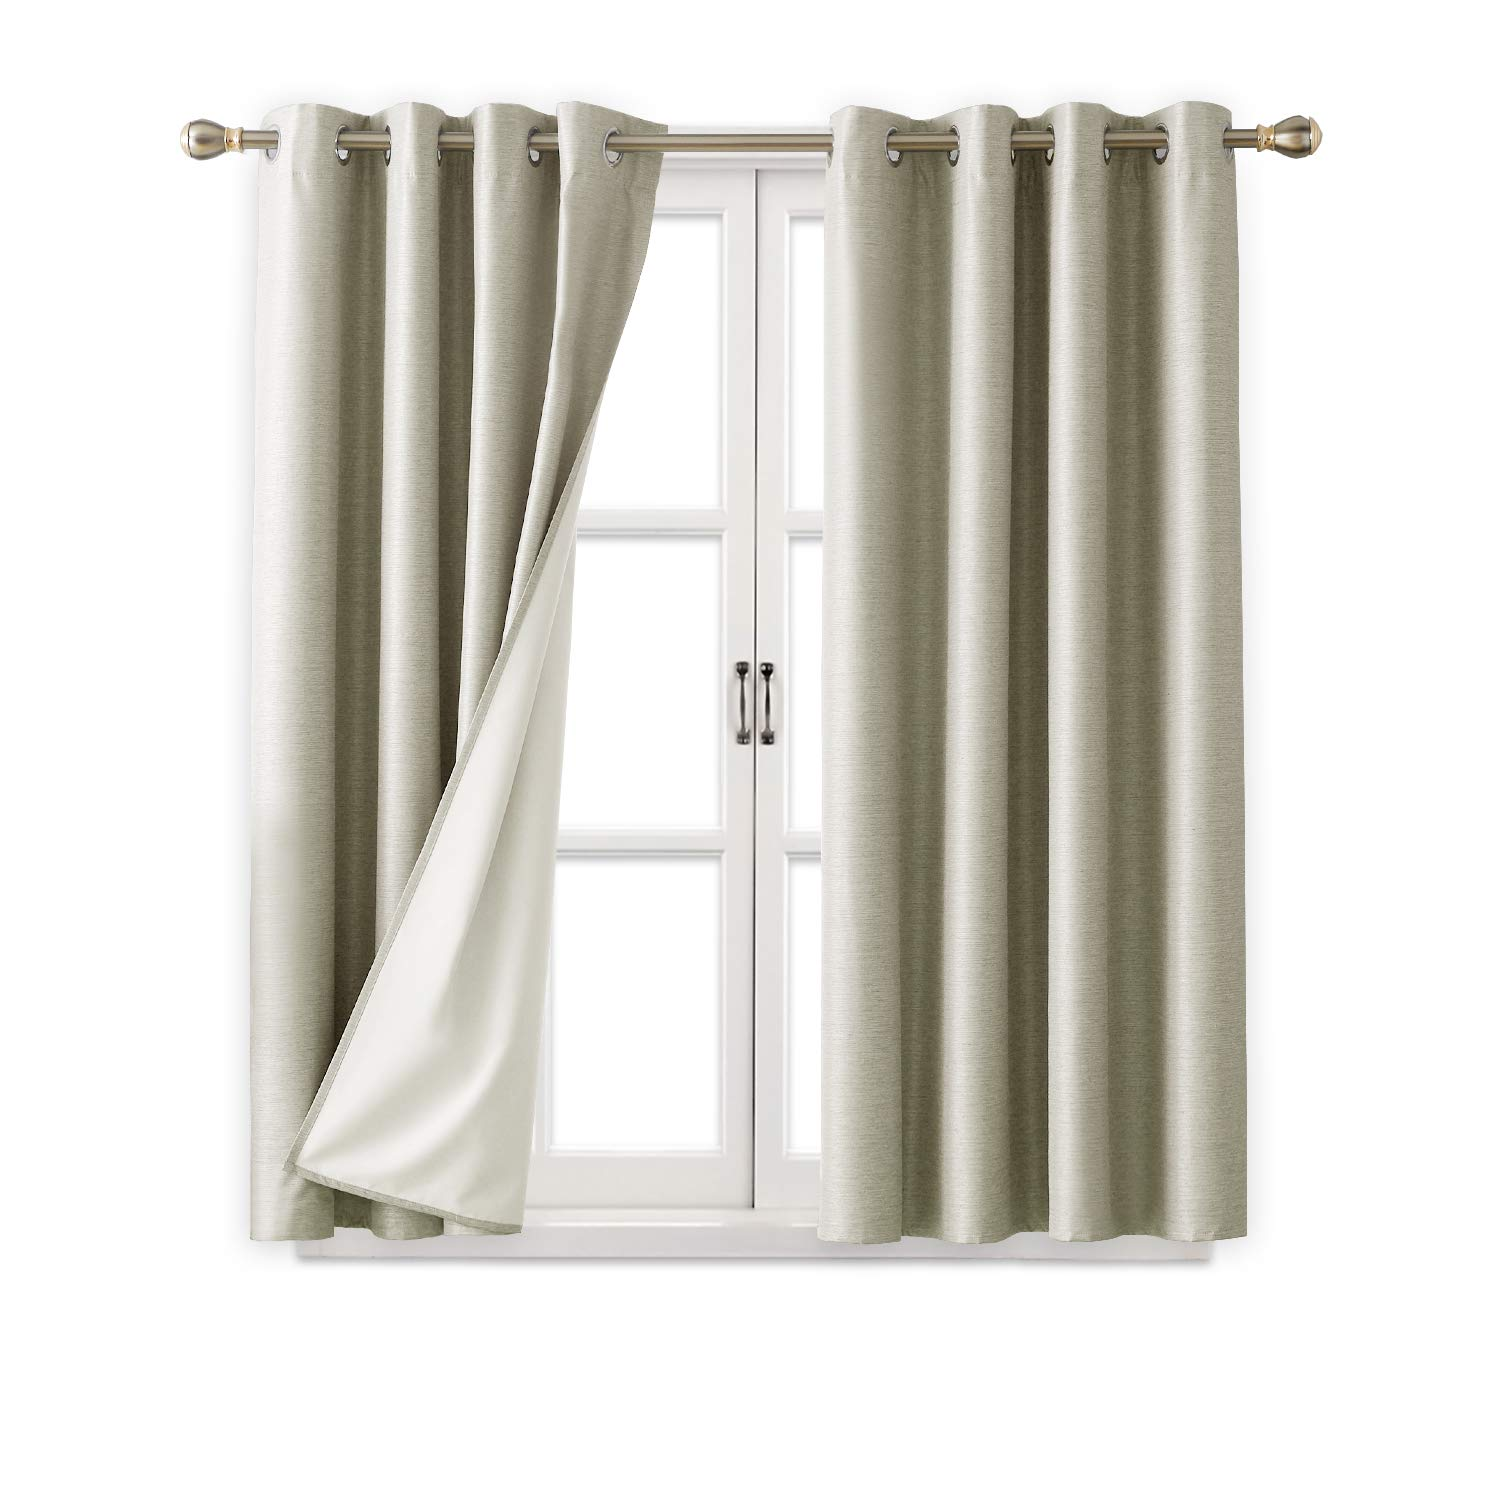 Black Room Darkening Curtains.Deconovo 100 Blackout Room Darkening Curtains Thermal Insulated Curtain Panel Drapes With White Coated Thermal Insulated Lining For Bedroom Beige 52w